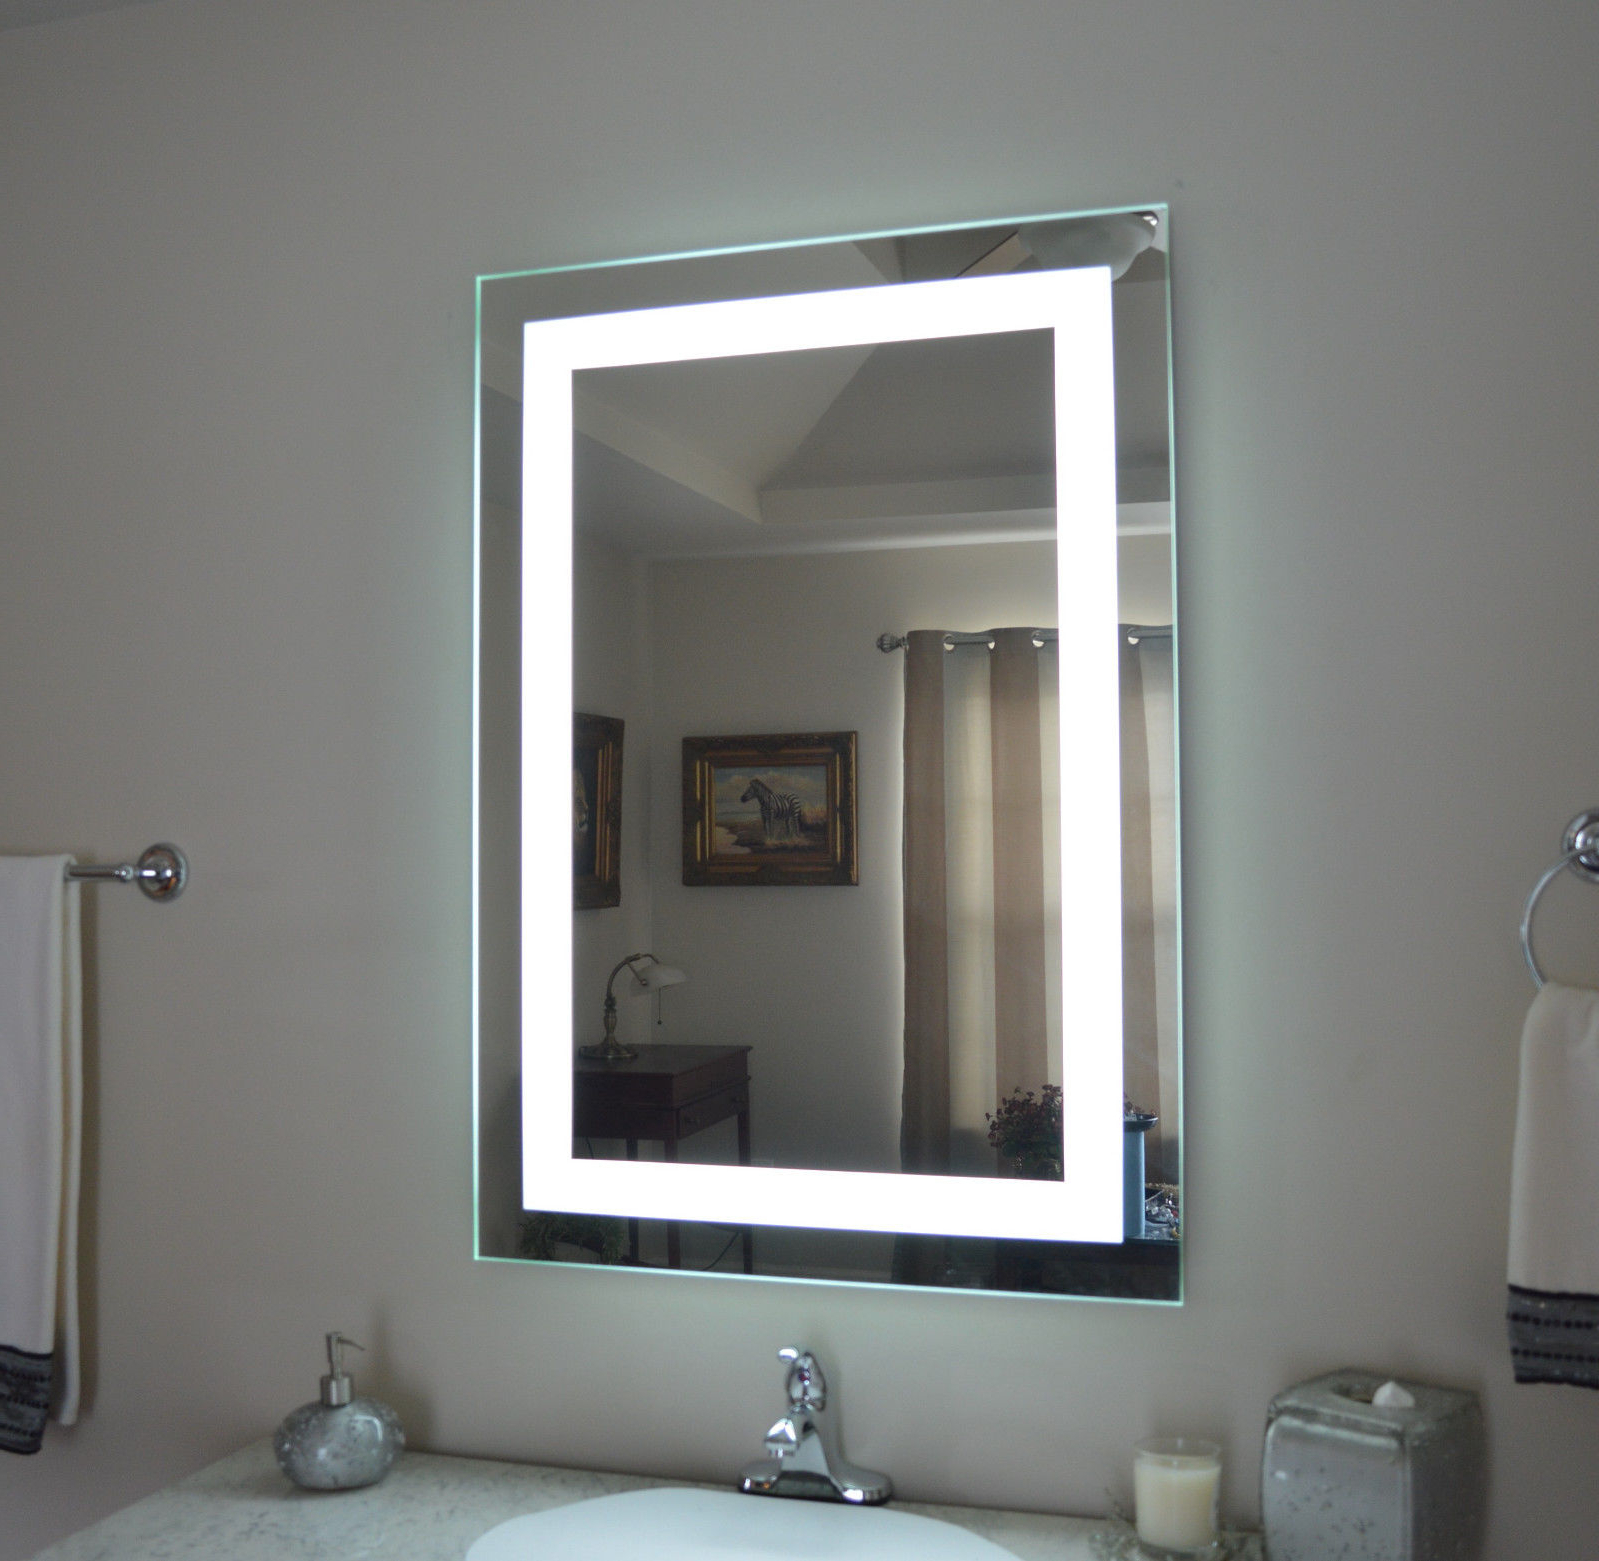 Latest Lighted Wall Mirrors For Bathrooms Within Led Bathroom Wall Mirror Illuminated Lighted Vanity Mirror With Touch Button Ega (View 13 of 20)